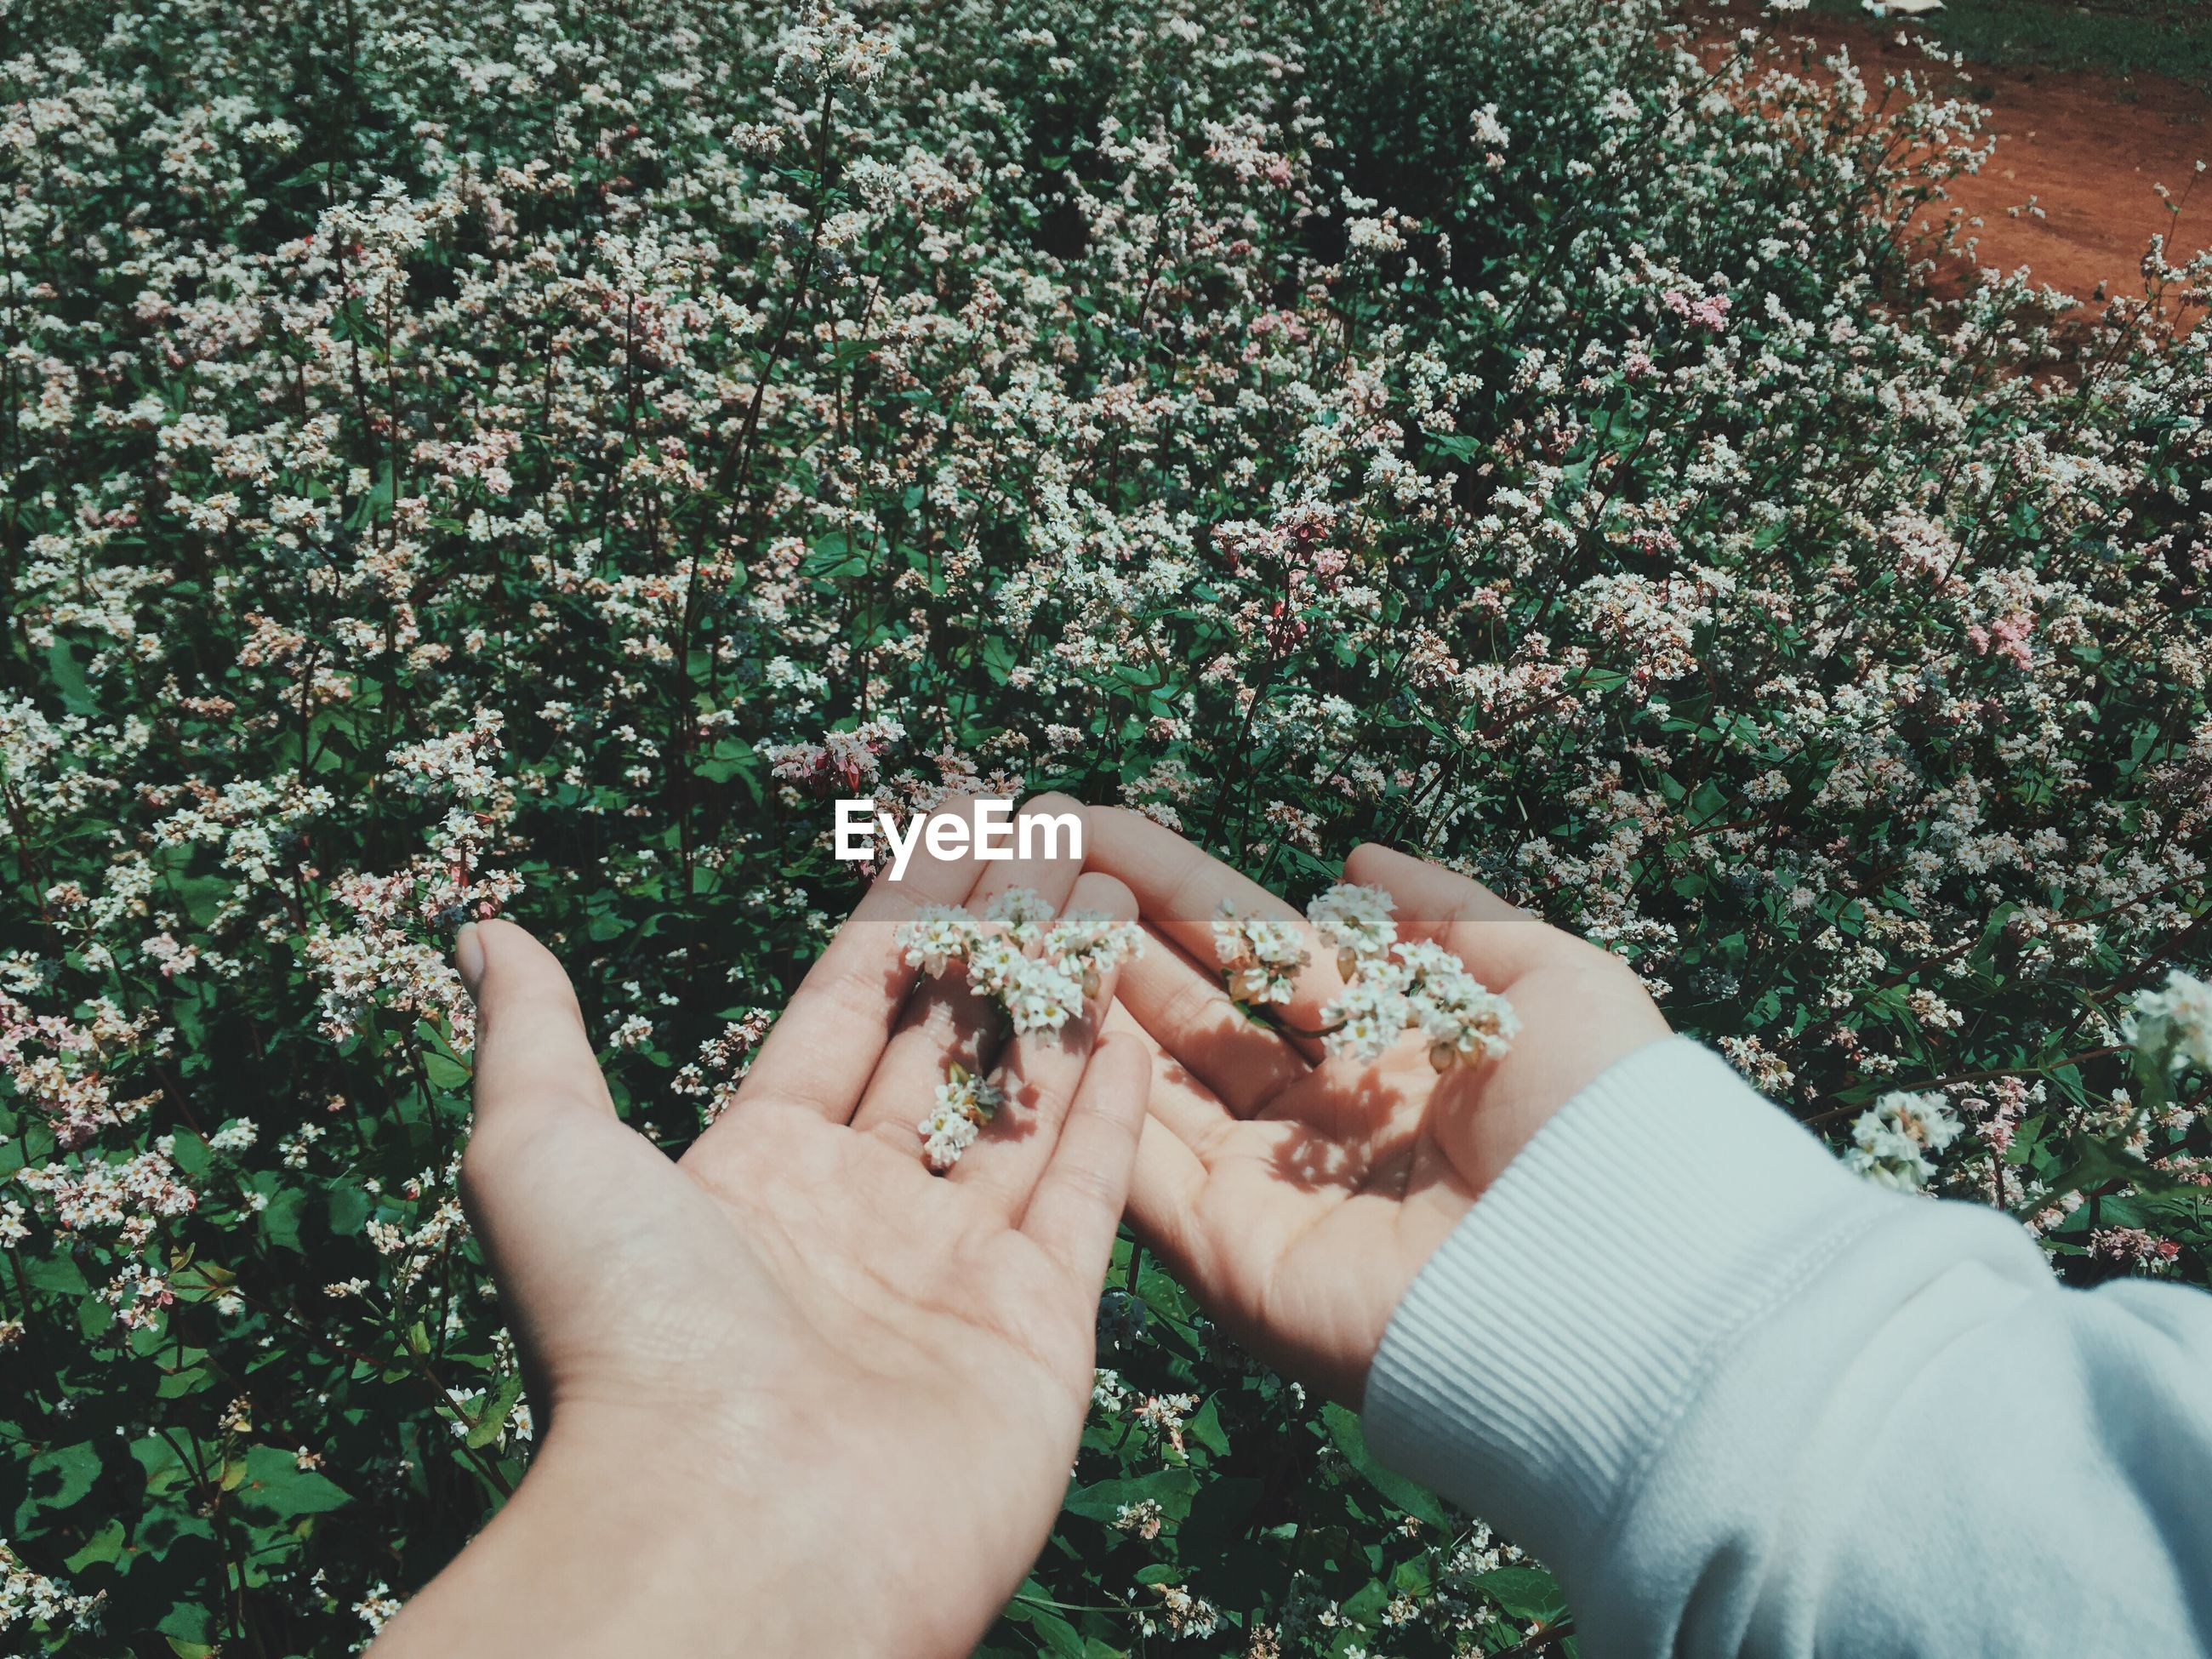 Cropped hands holding flowering plants